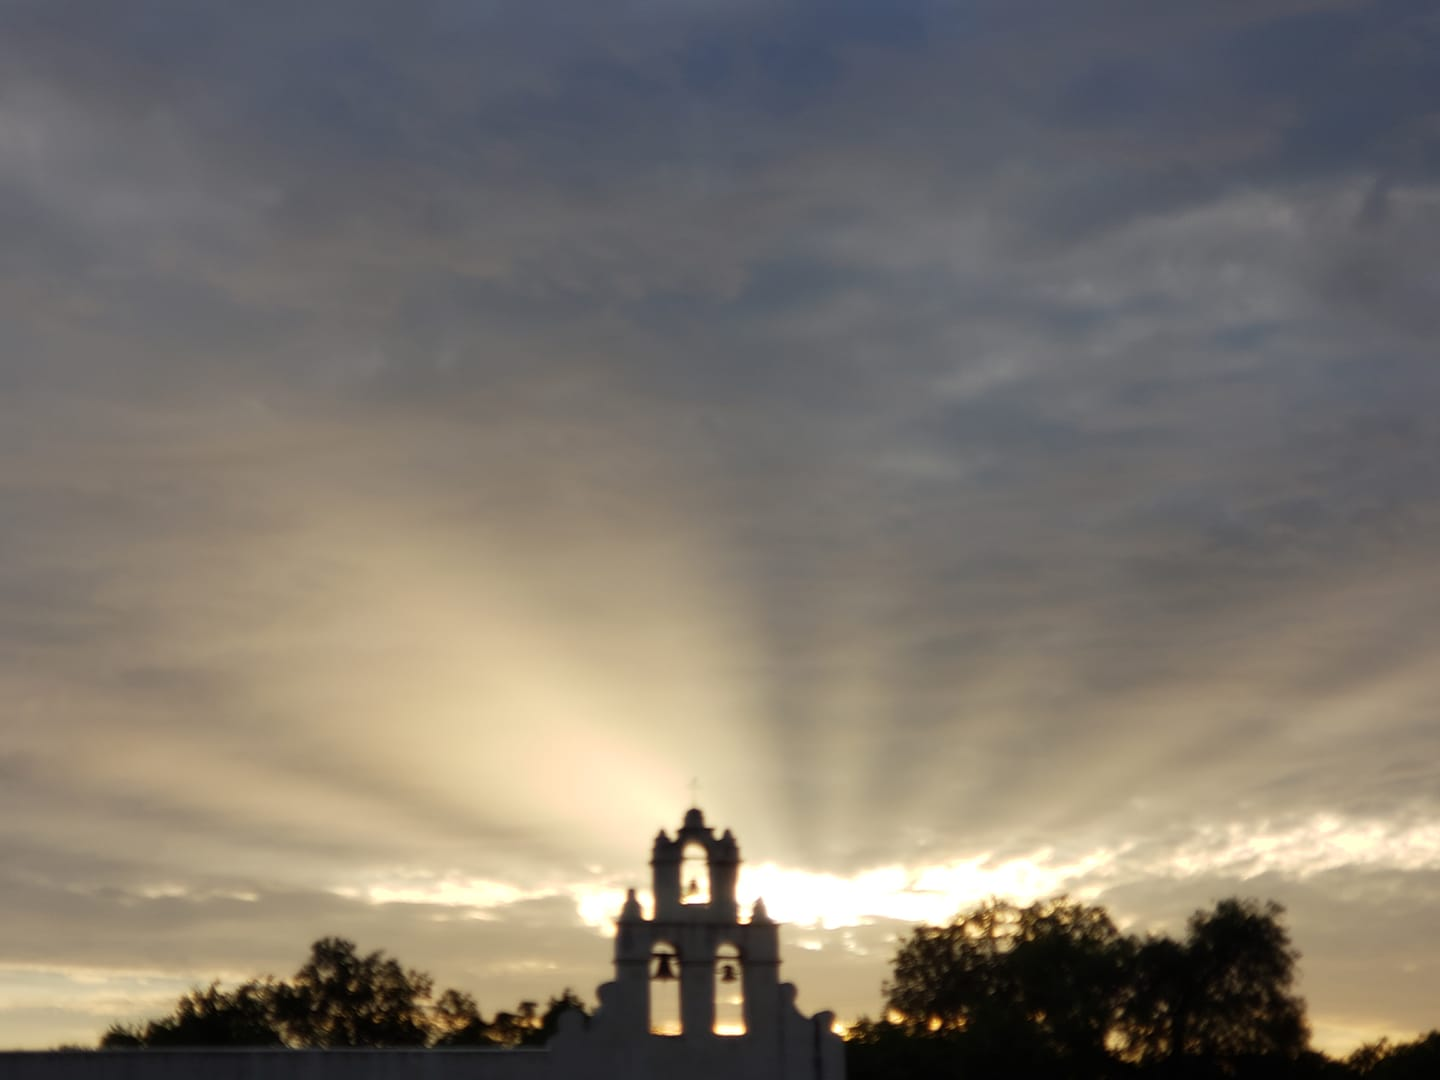 Jacob Rux likes to take beautiful photos like this one of the San Antonio Missions when he's biking the Mission Reach segment